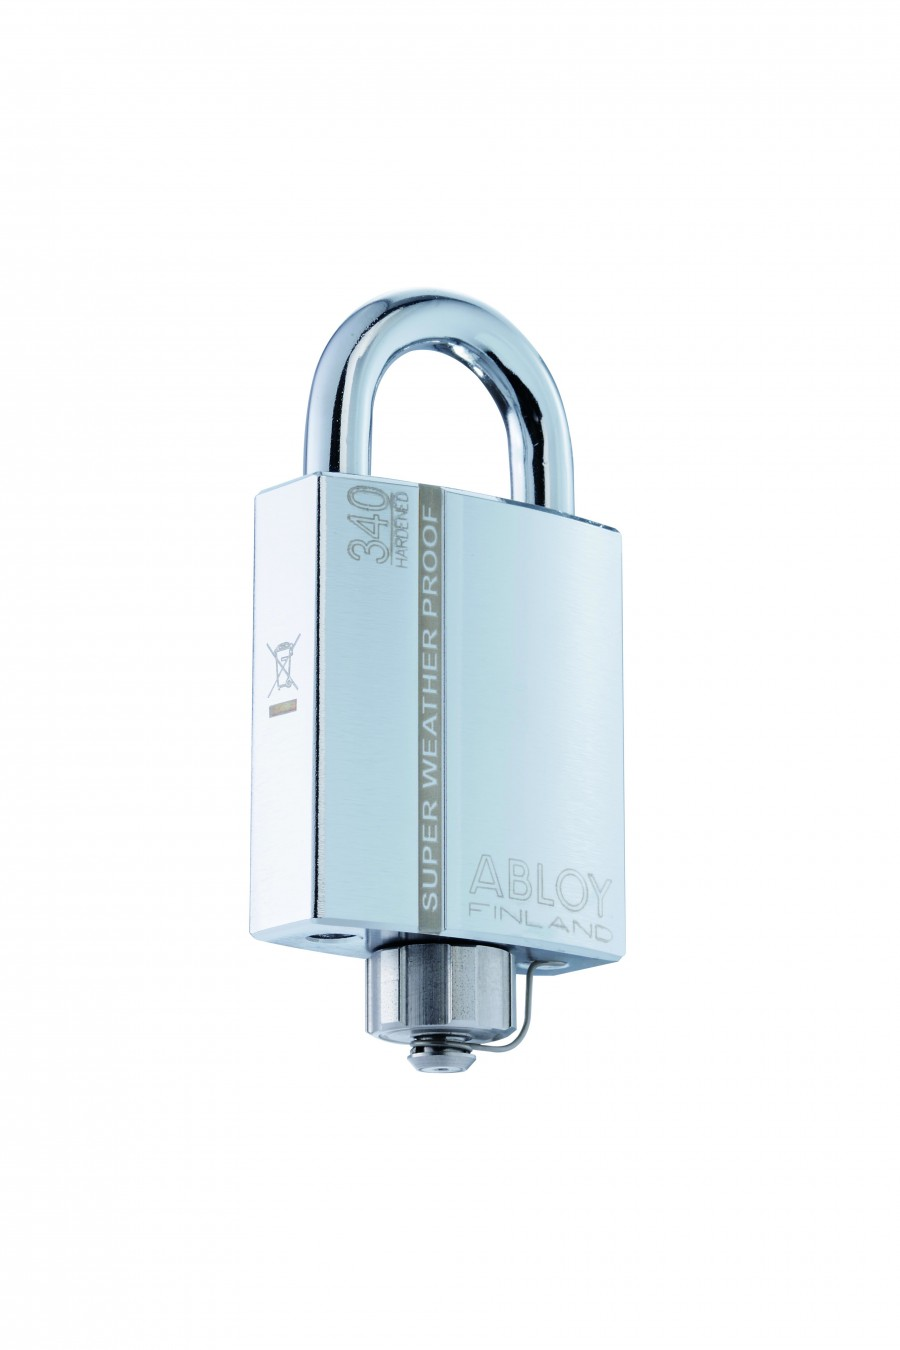 Window Security Products Specification Building Product